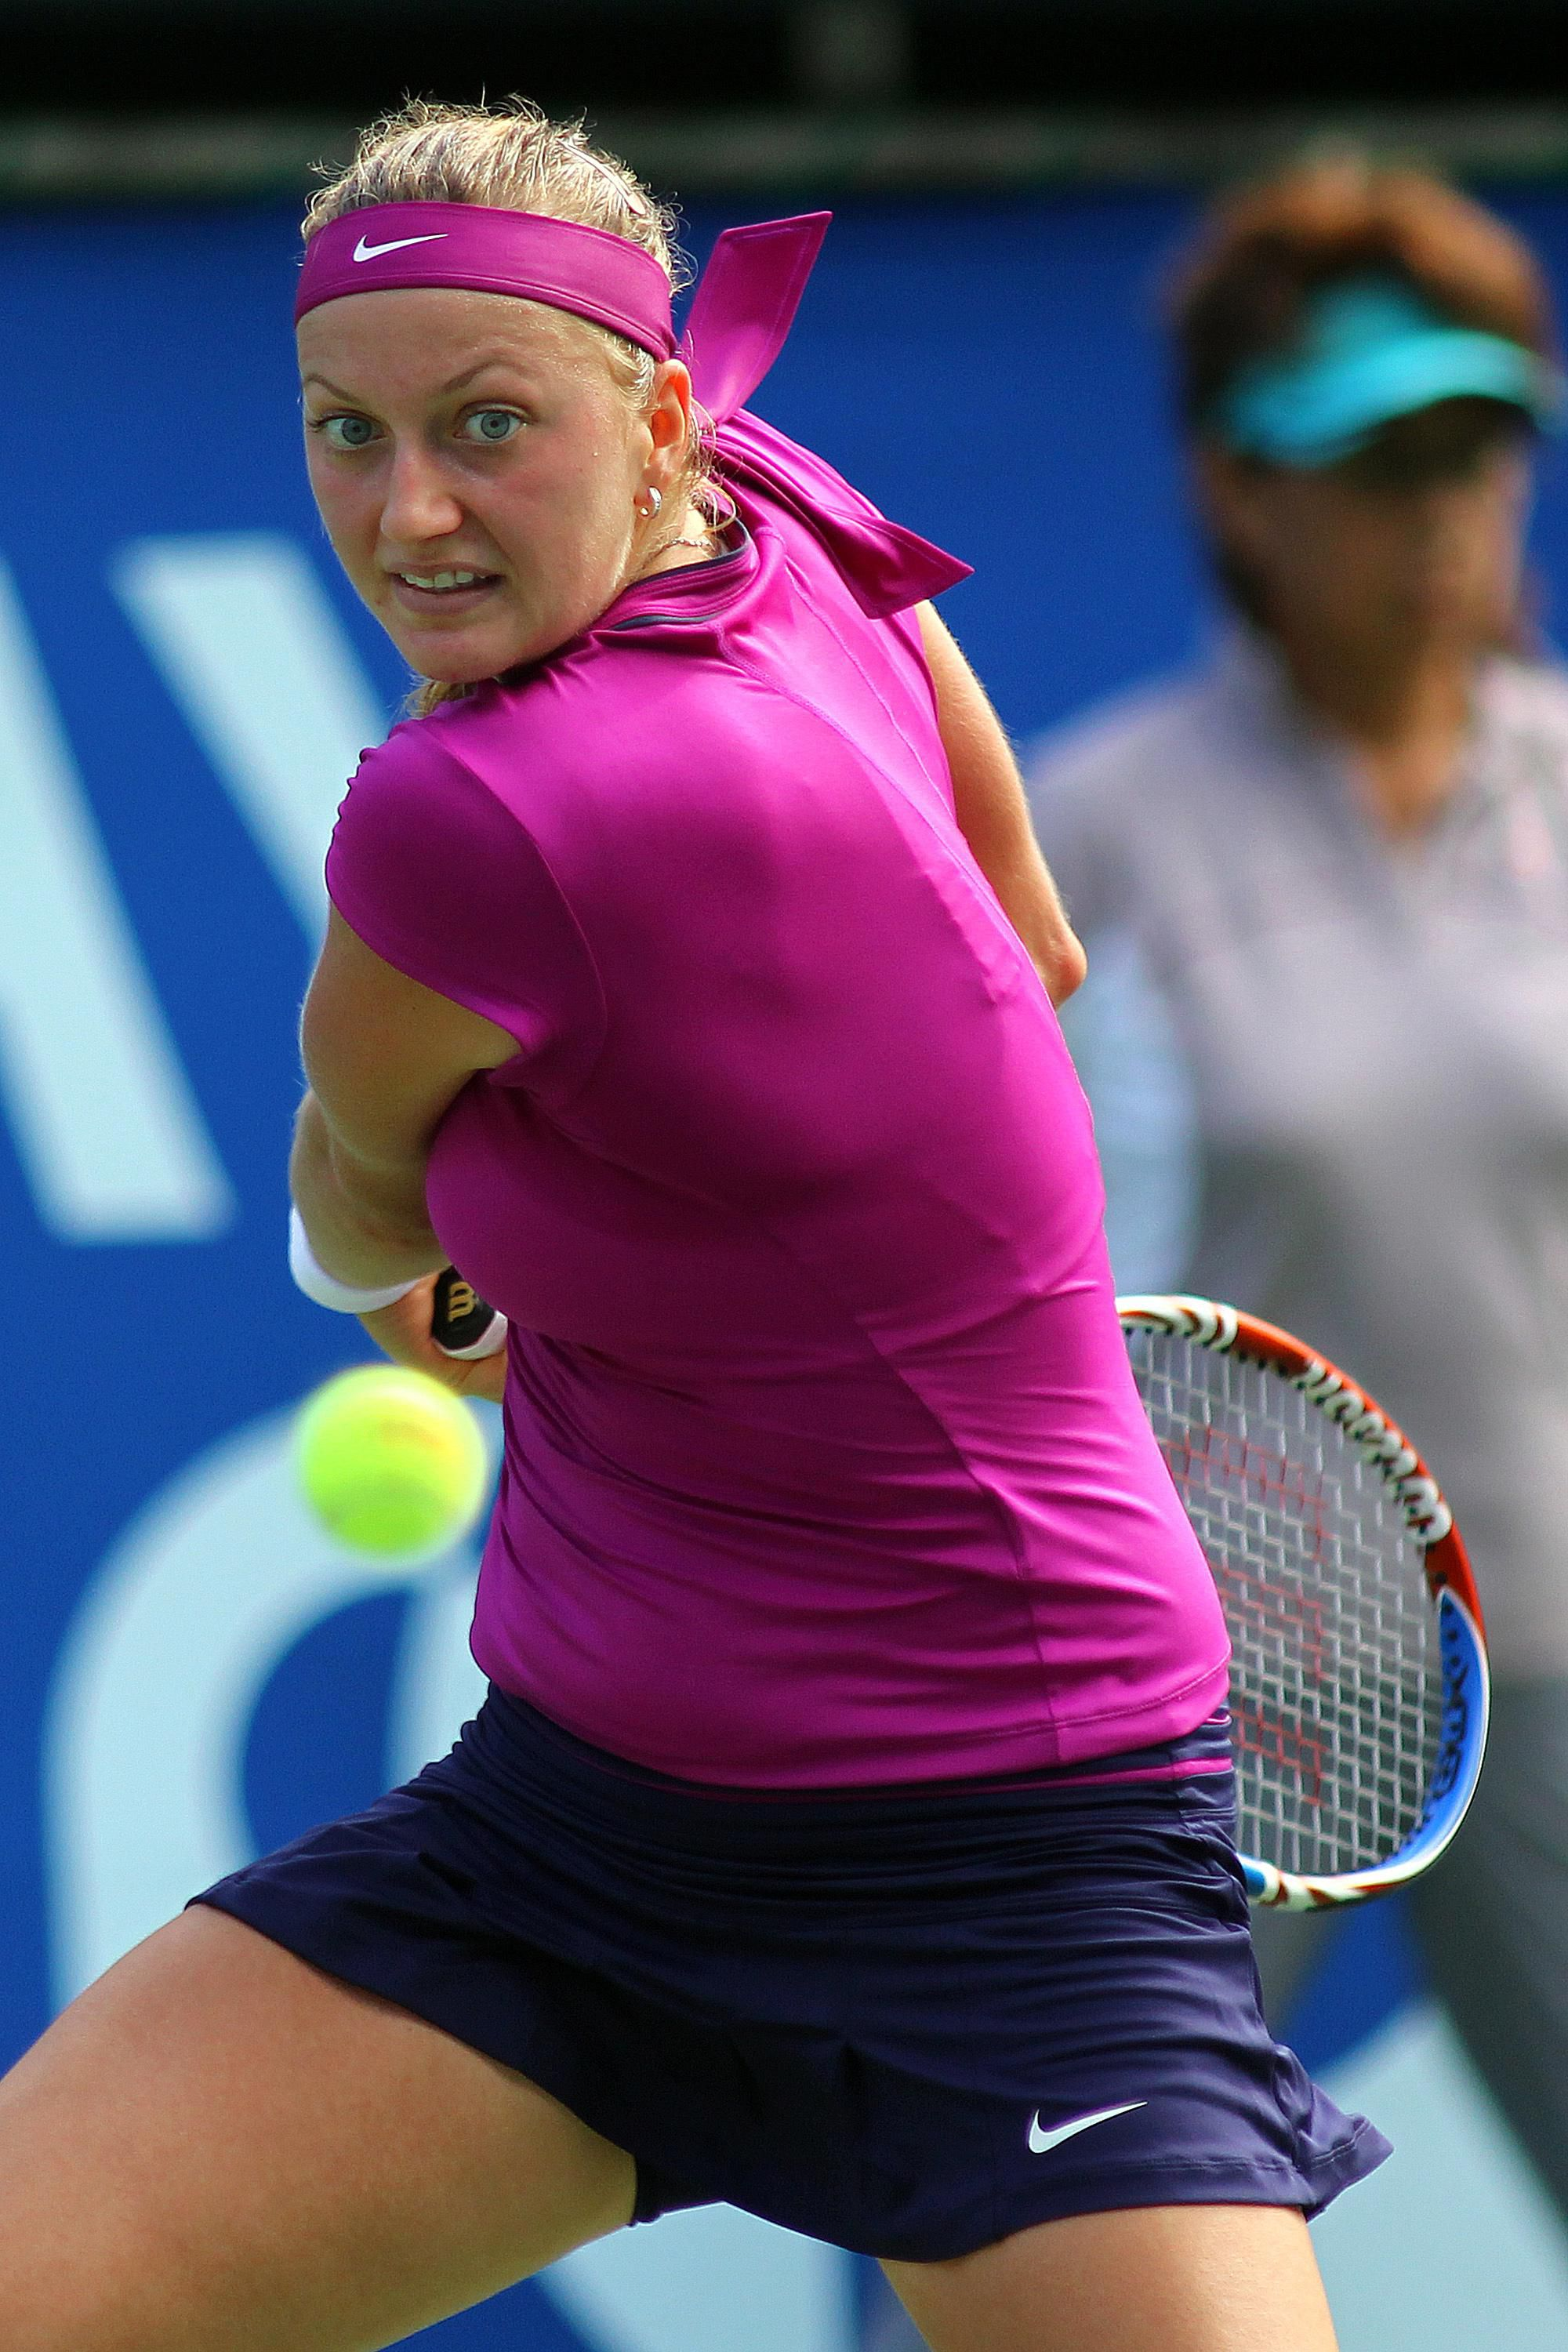 Petra Kvitova Photos Gallery Of Pictures Of Petra Kvitovas Strokes Backswing For Two Handed